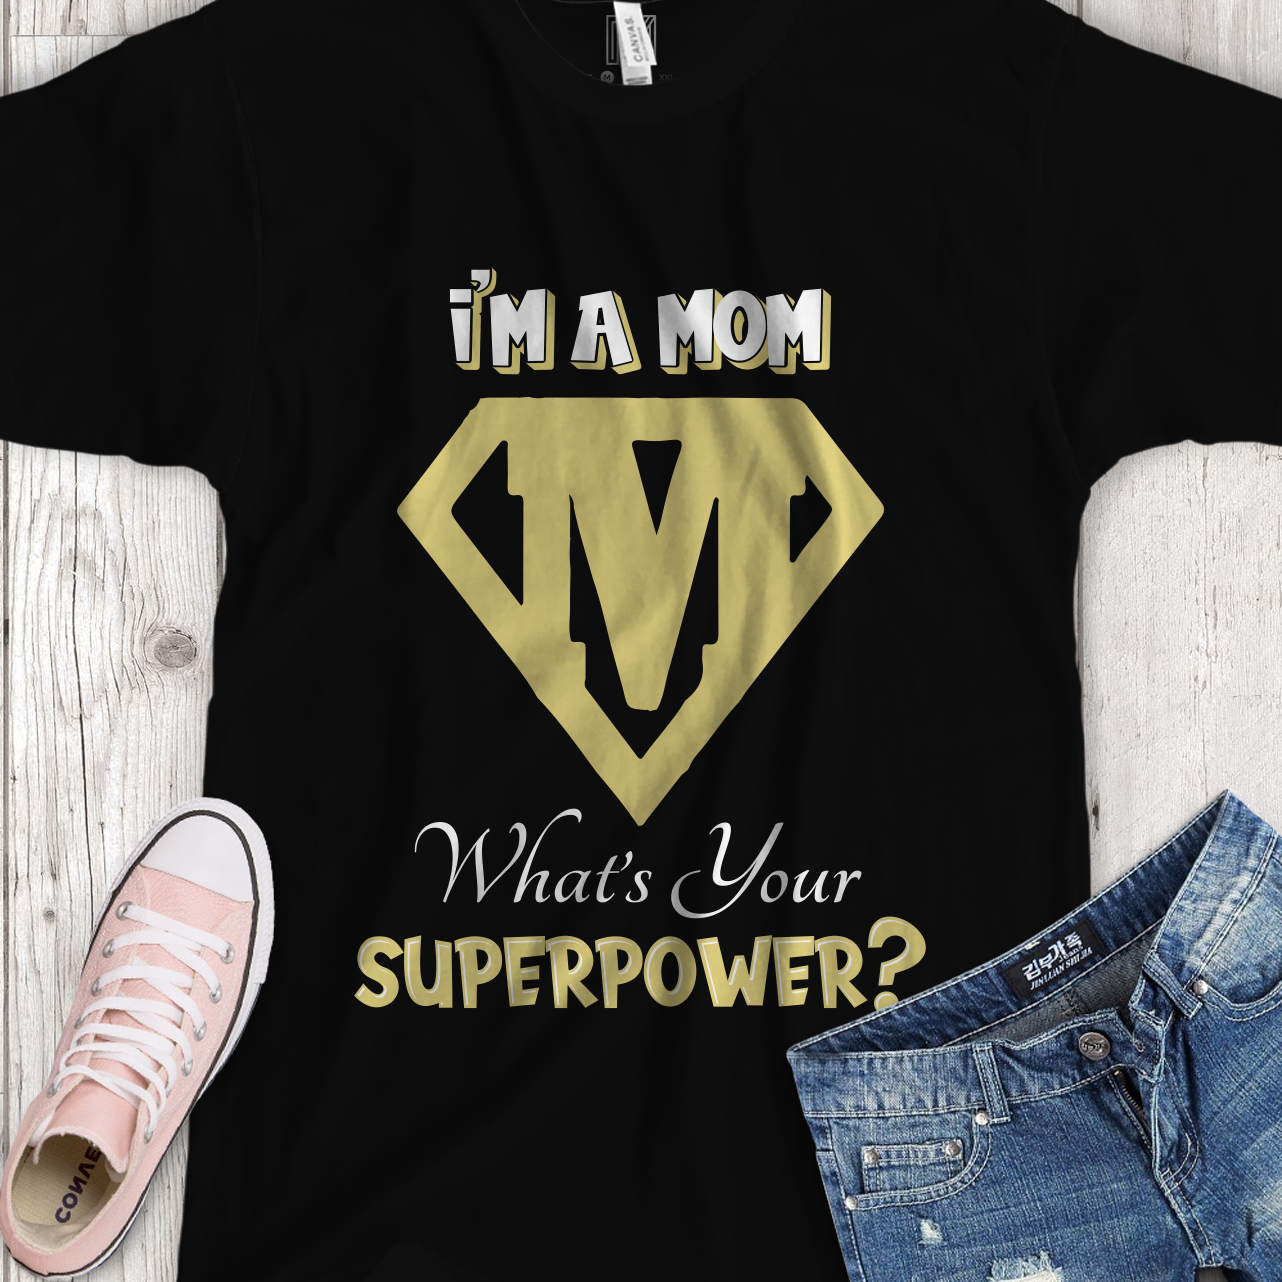 I'm a Mom. What's your superpower? T-Shirt